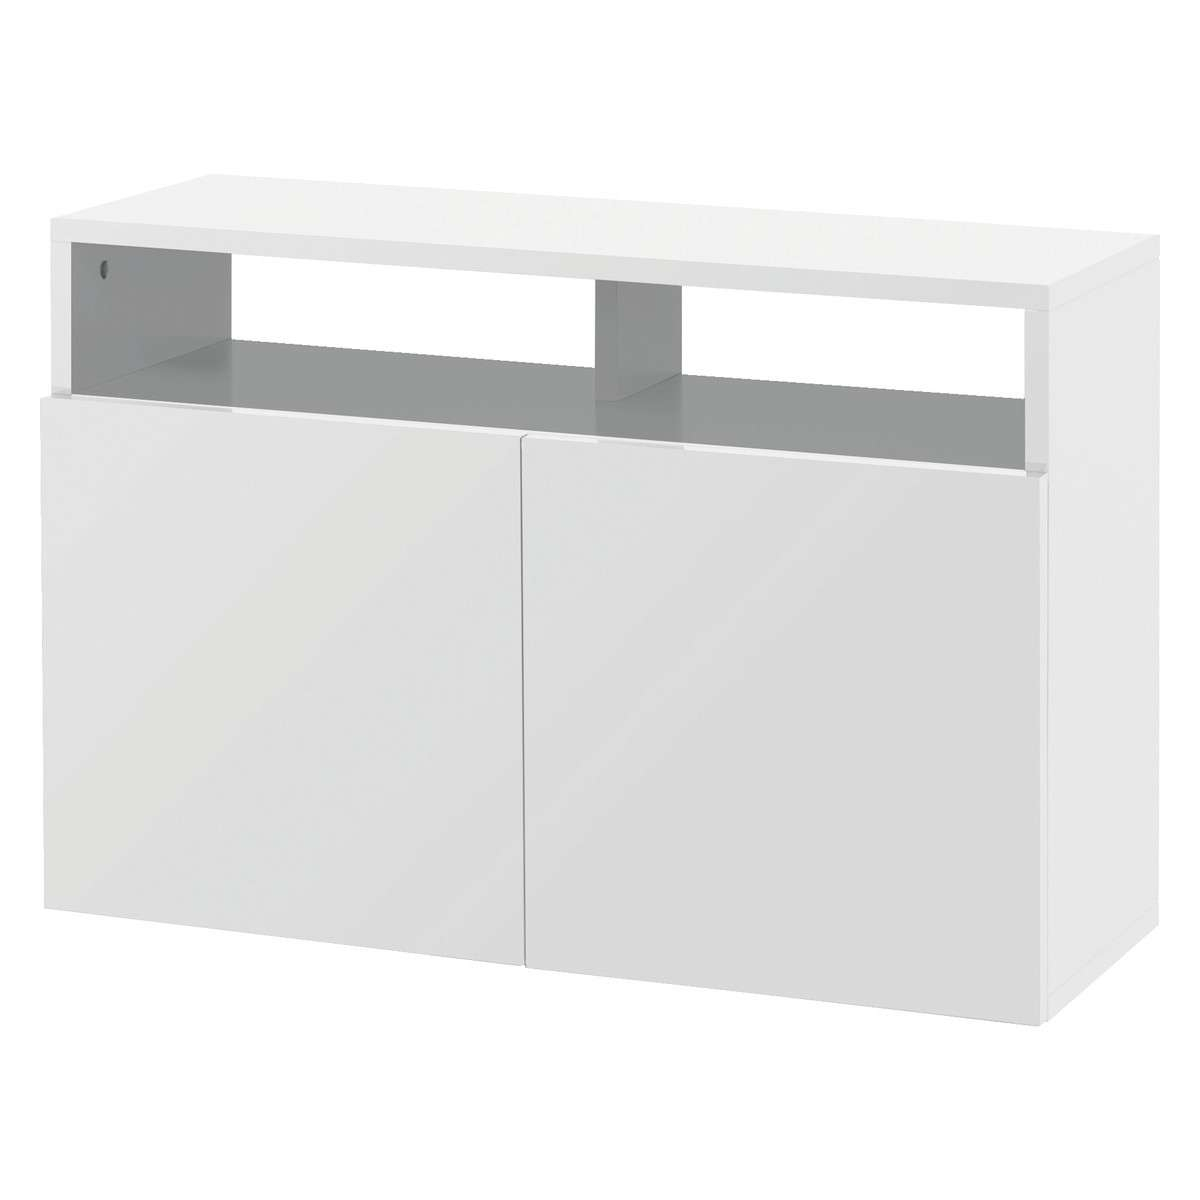 Kubrik White High Gloss Small Sideboard | Buy Now At Habitat Uk With High Gloss Sideboards (View 9 of 20)